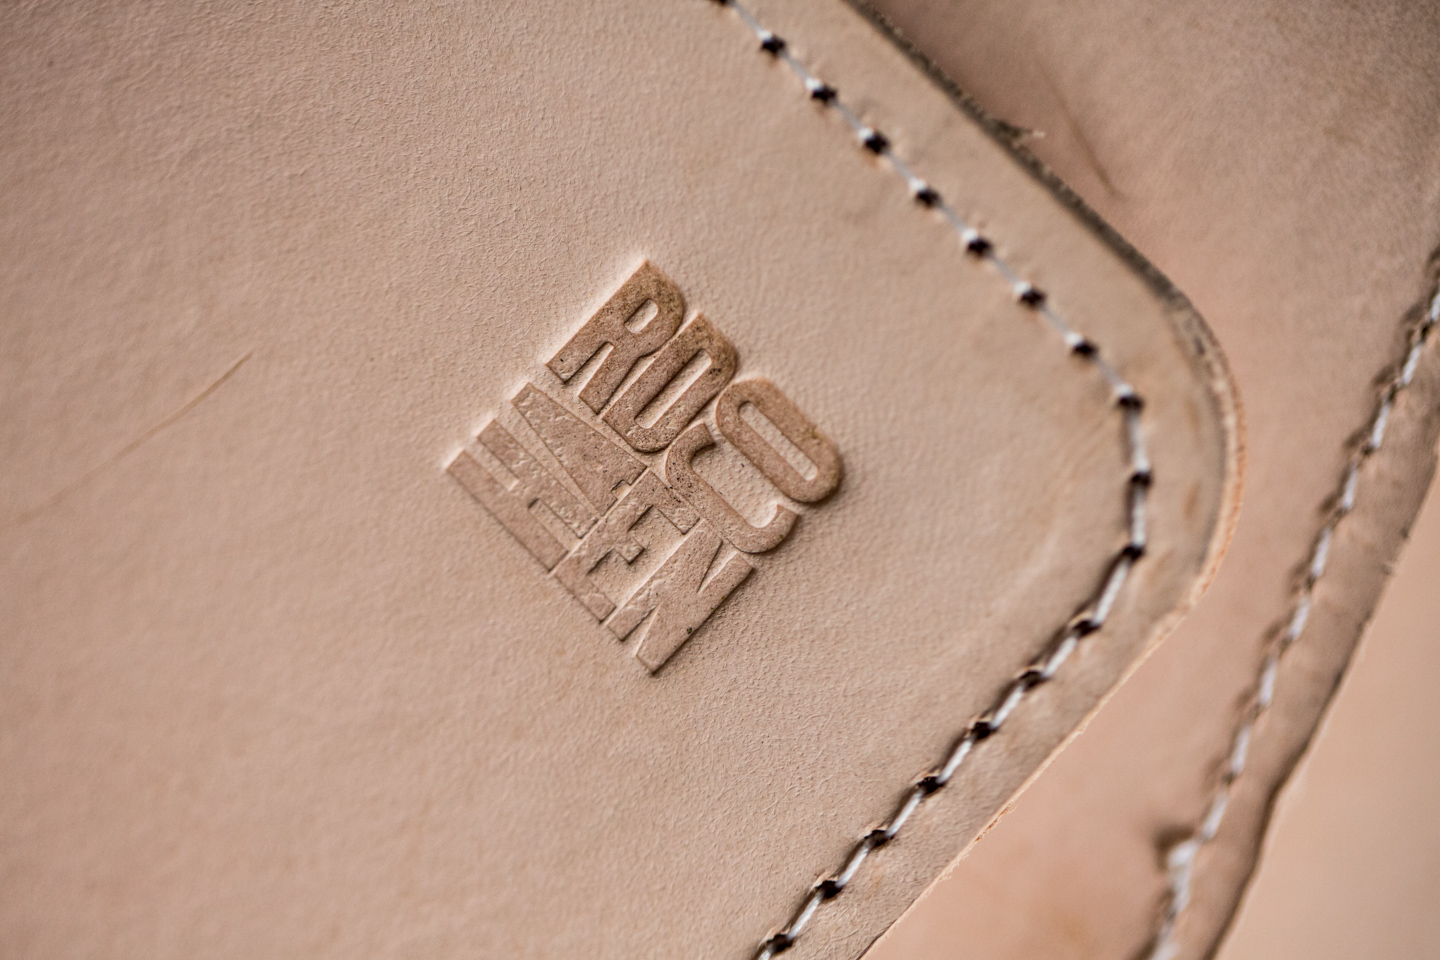 Leather detail image of stitching and embossed logo